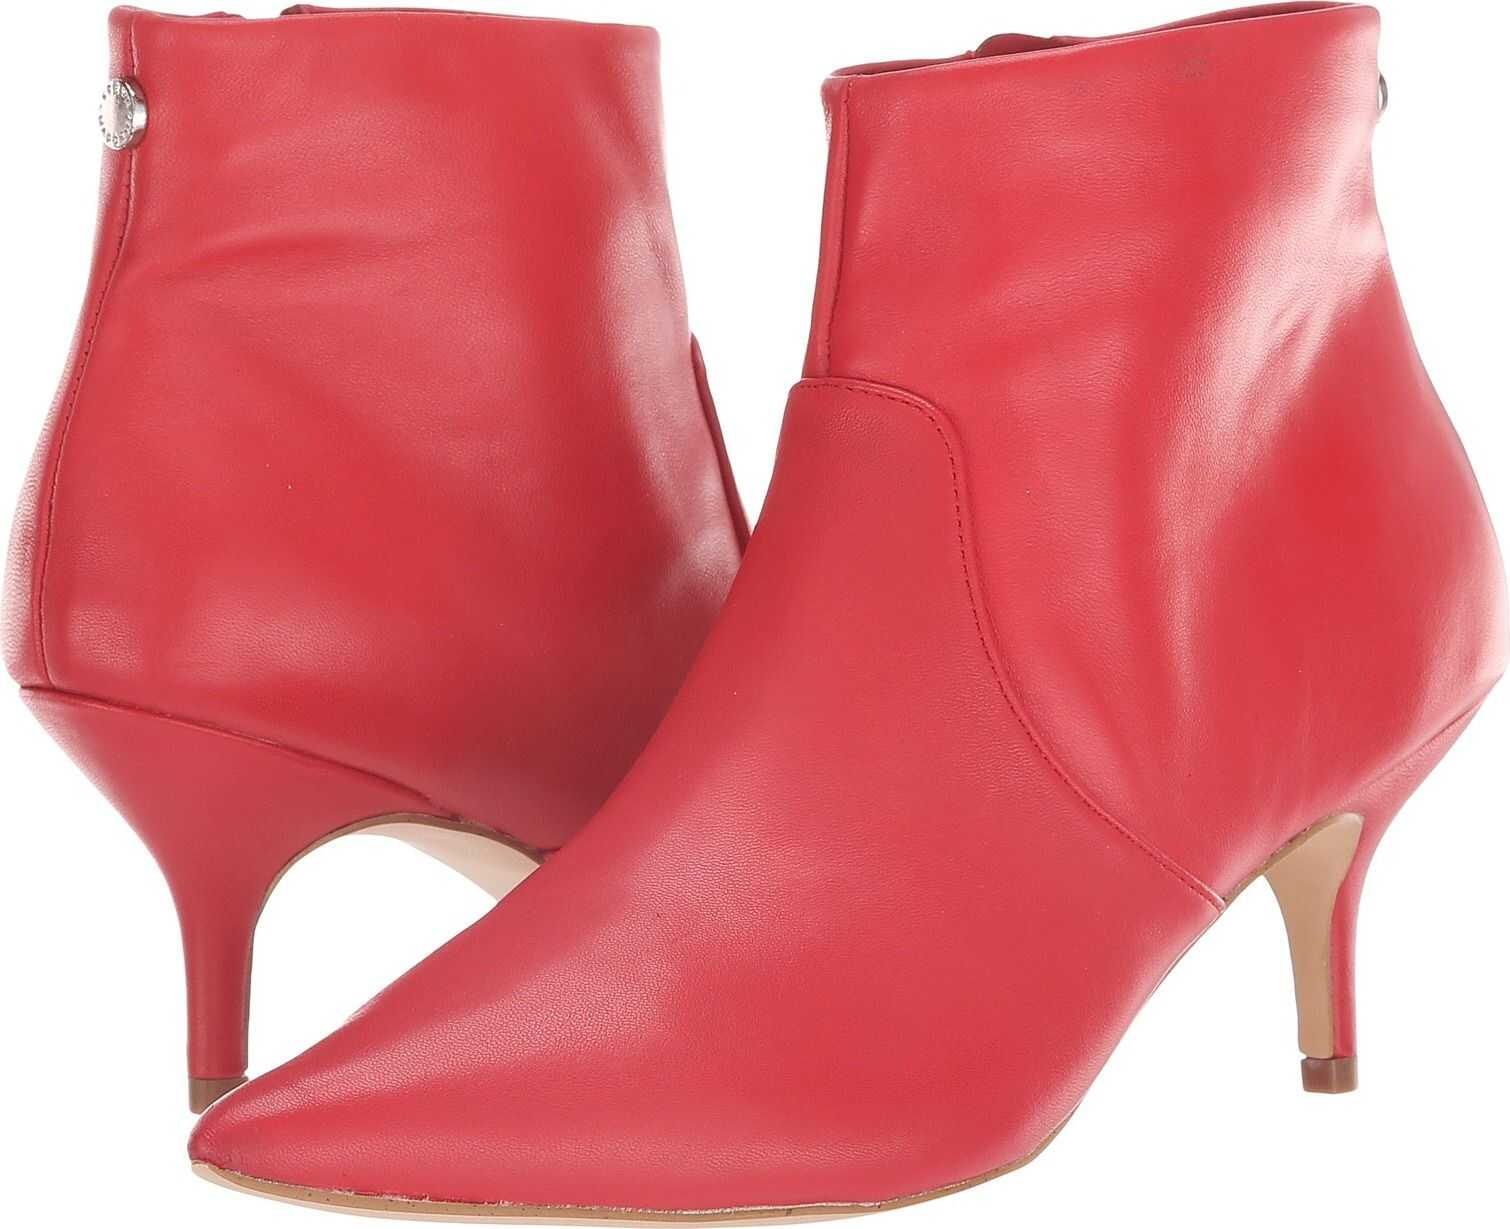 Steve Madden Rome Dress Bootie Red